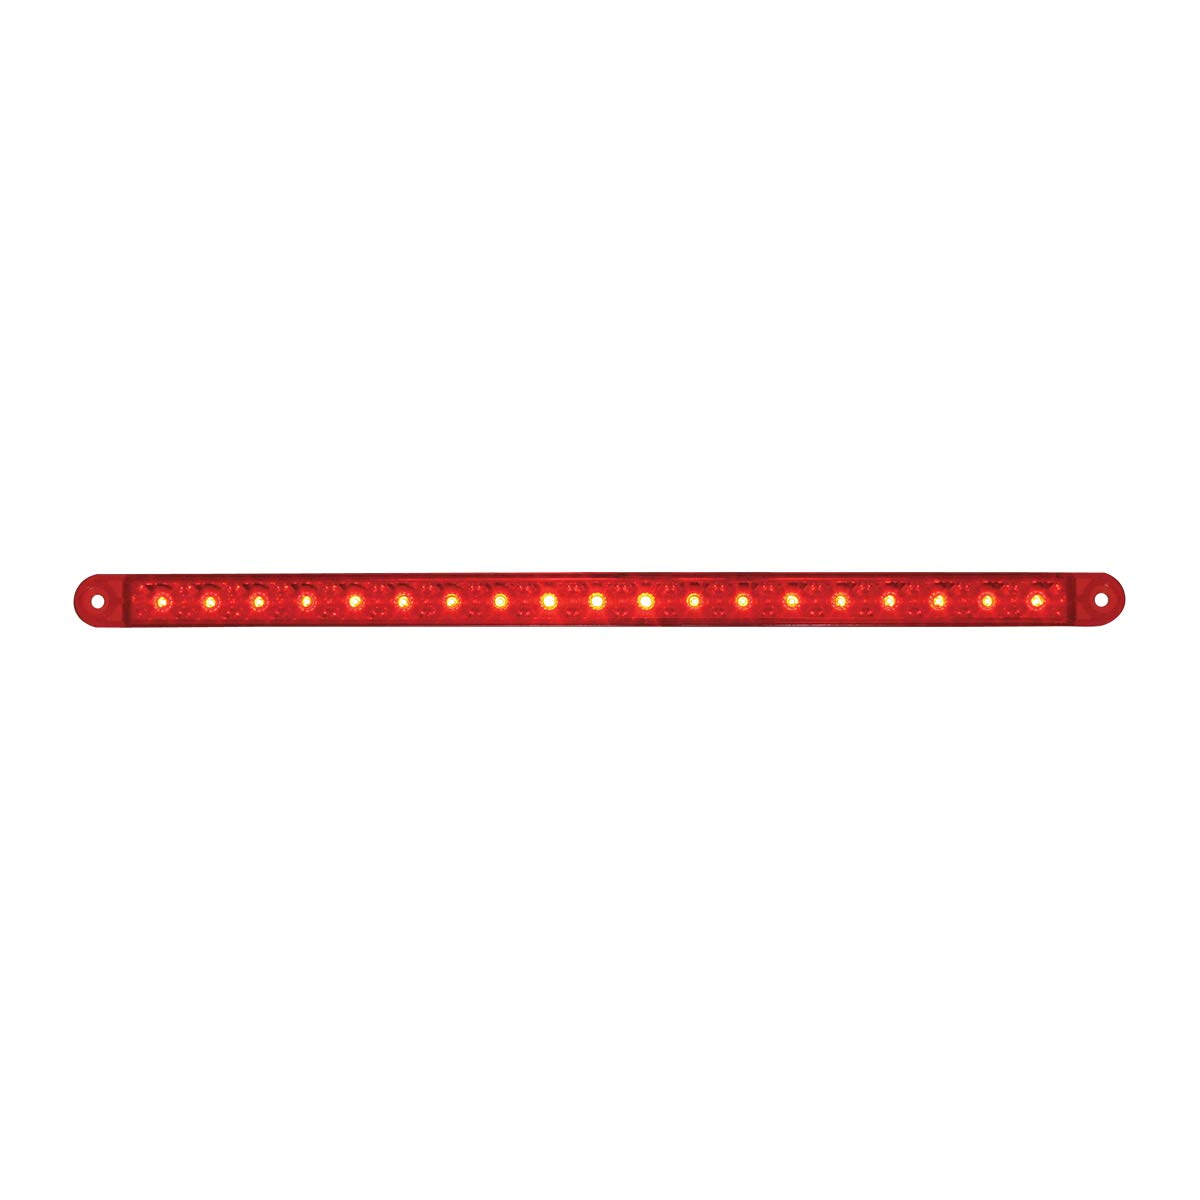 GG Grand General 76385 12 Inch 19-Led Flush Mount Light Bar, Red Lens, 3 Wires by GG Grand General